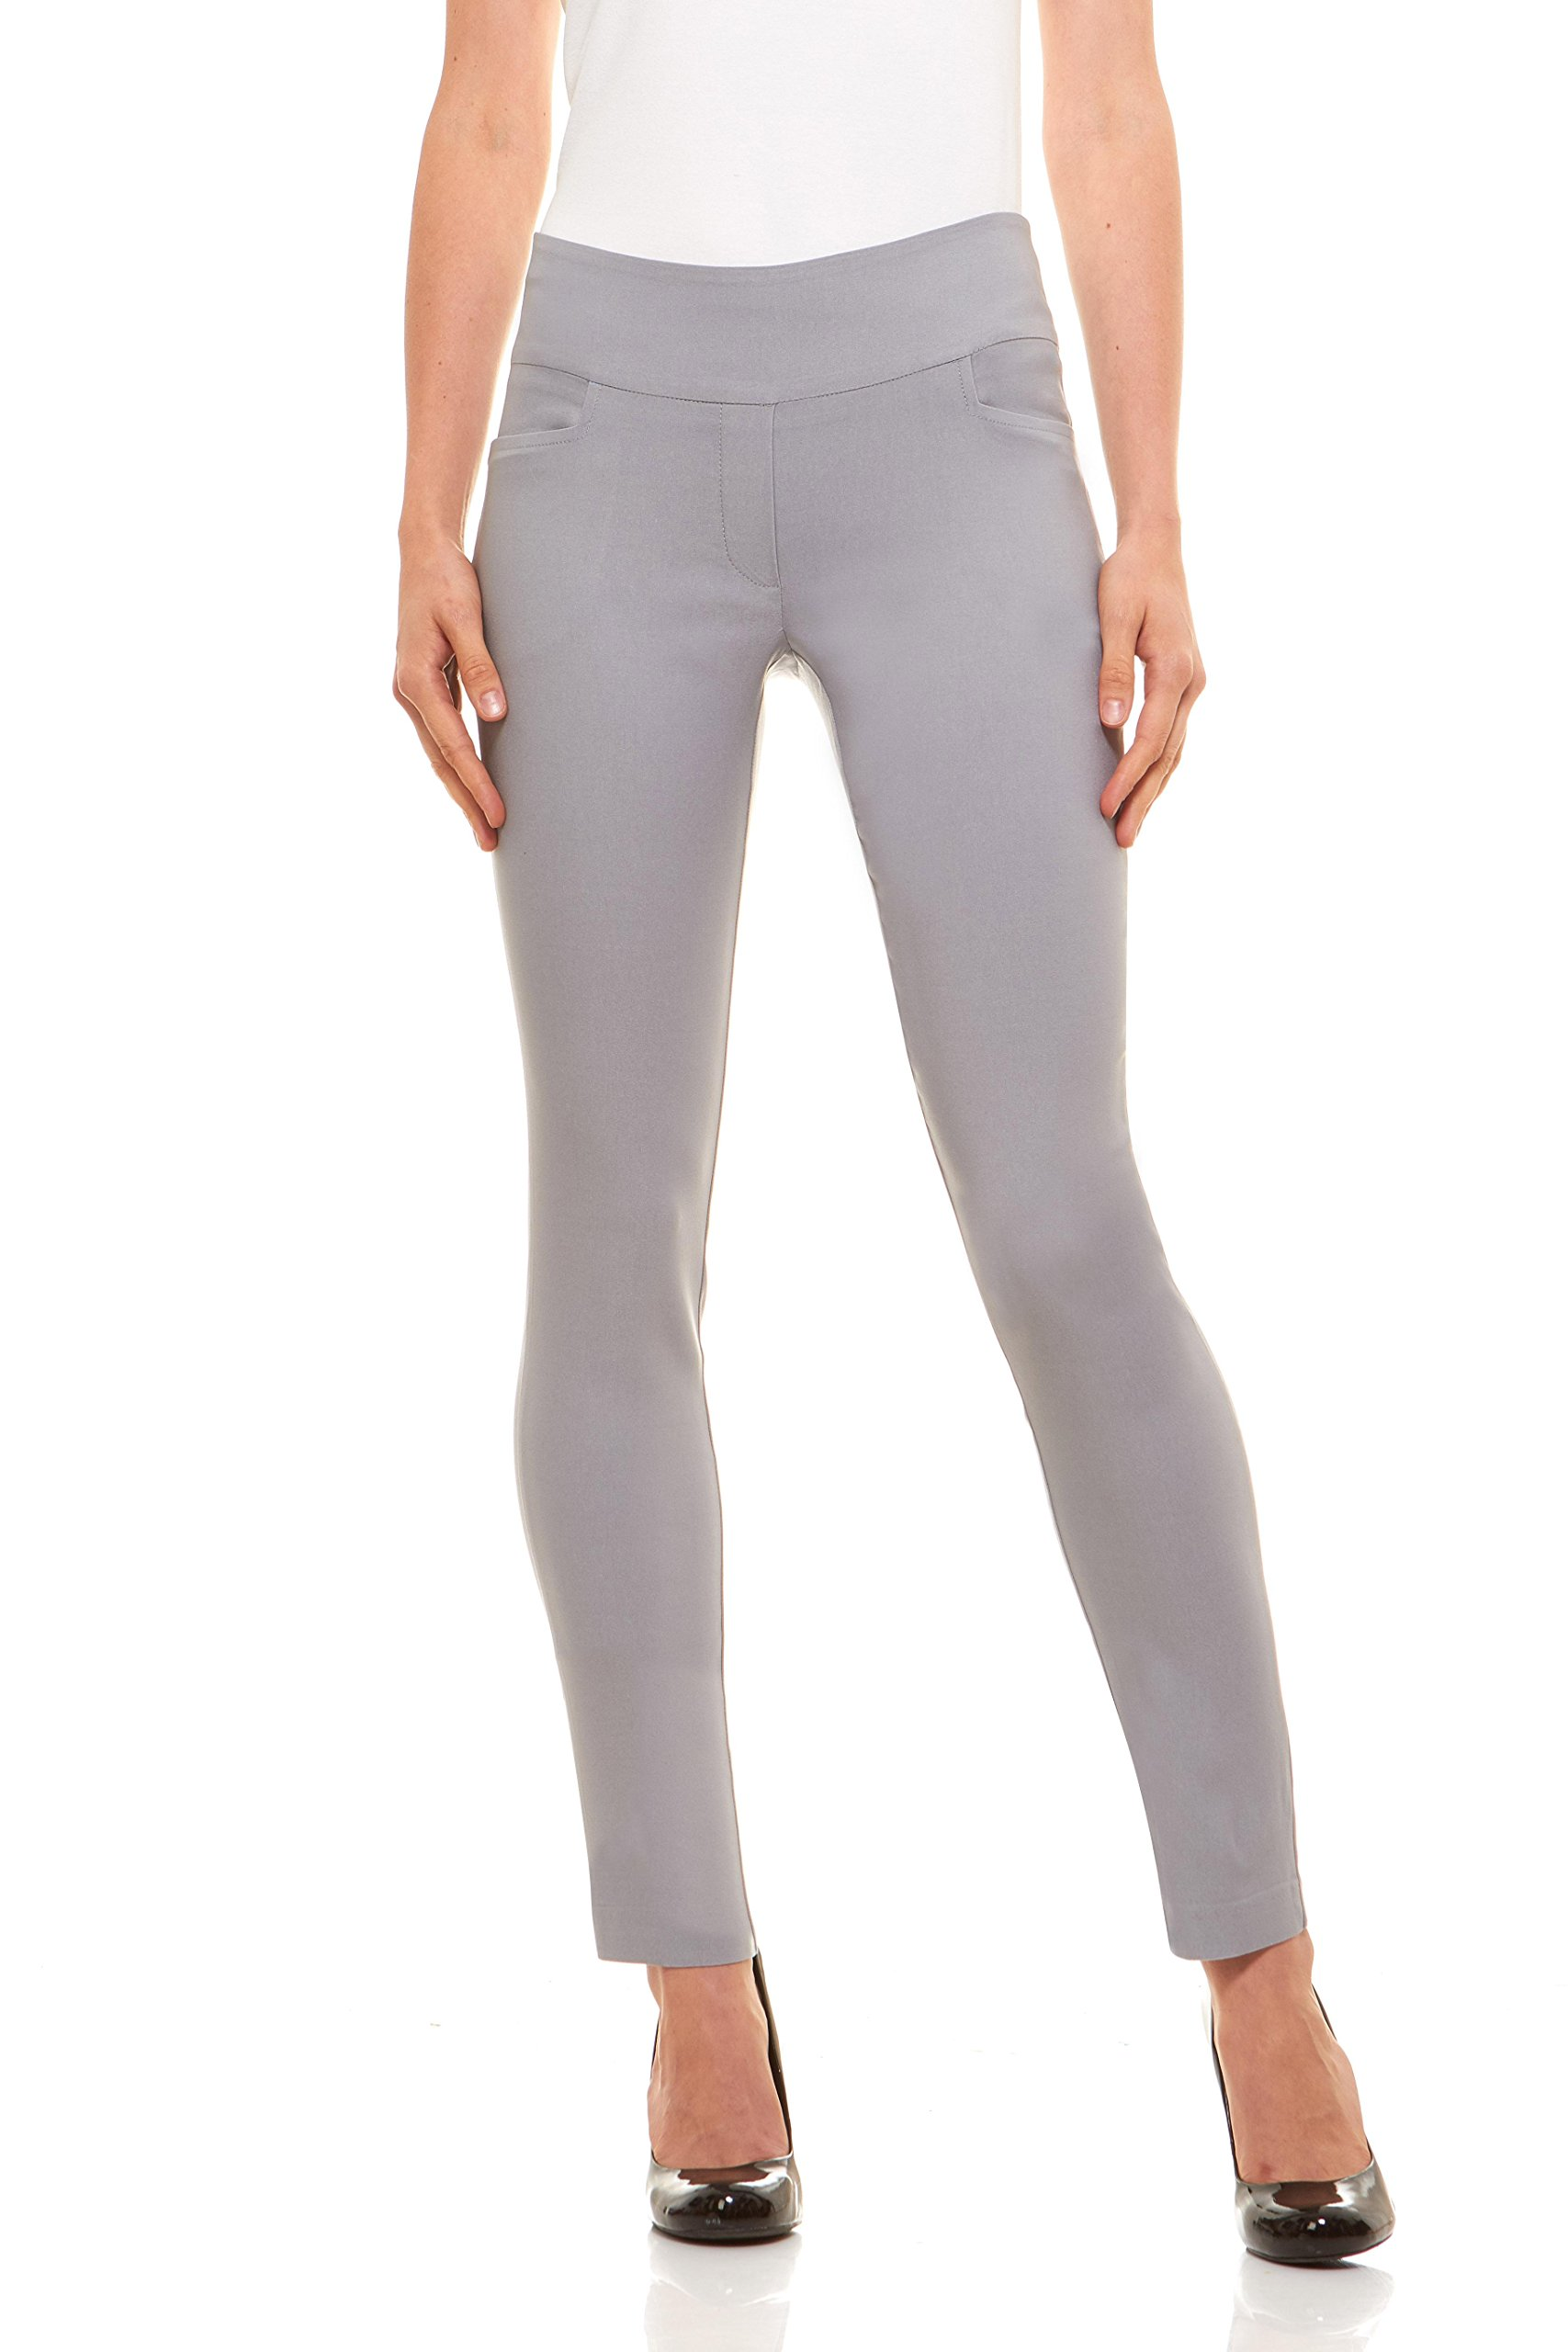 Velucci Womens Straight Leg Dress Pants - Stretch Slim Fit Pull On Style, Light Grey-L